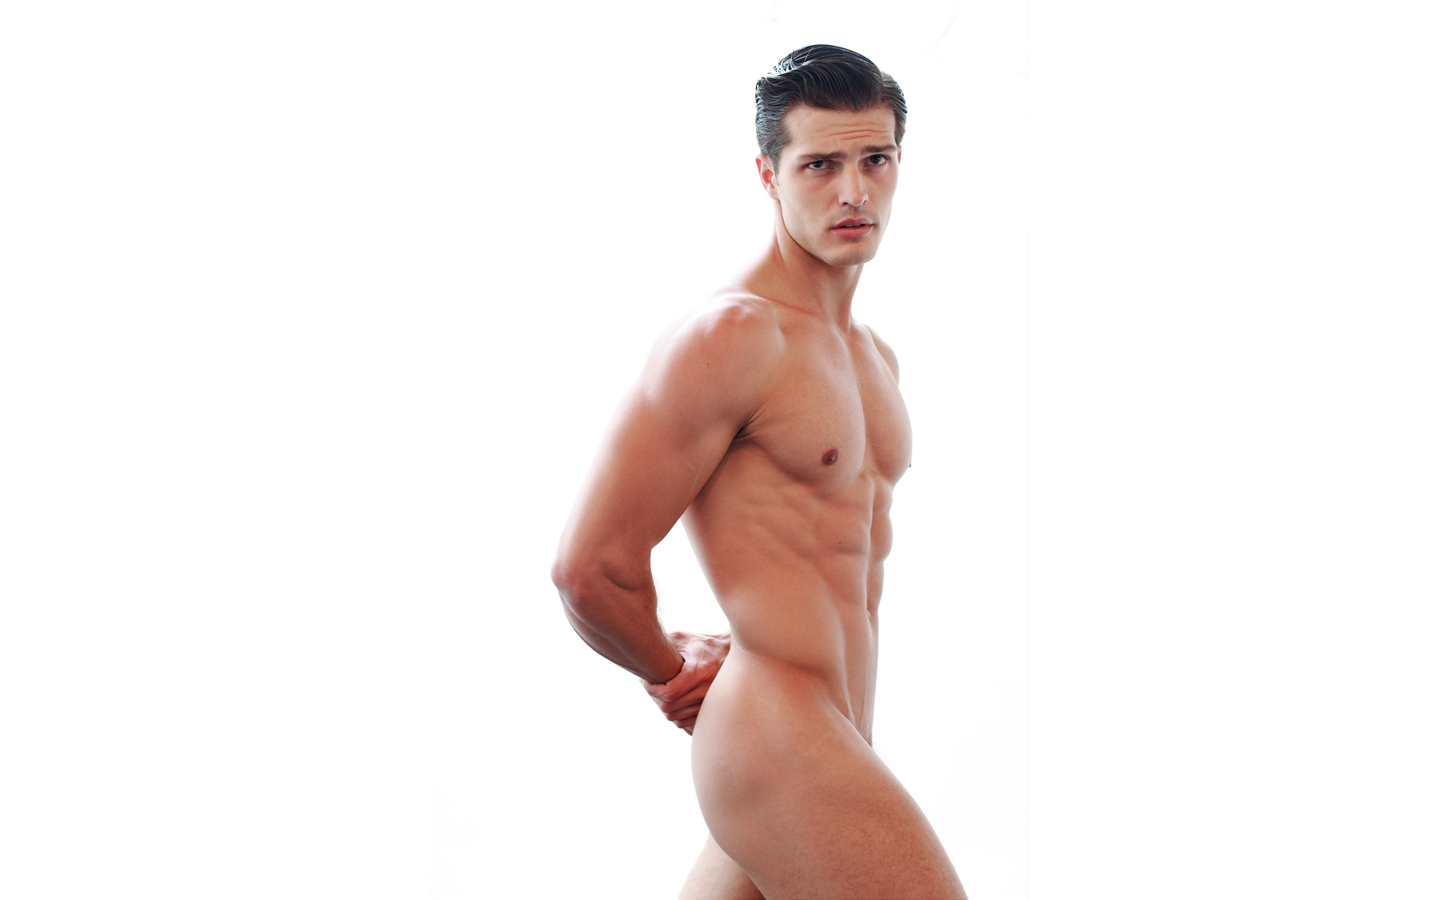 Sexy Man Naked Body Young Guy Stock Photo